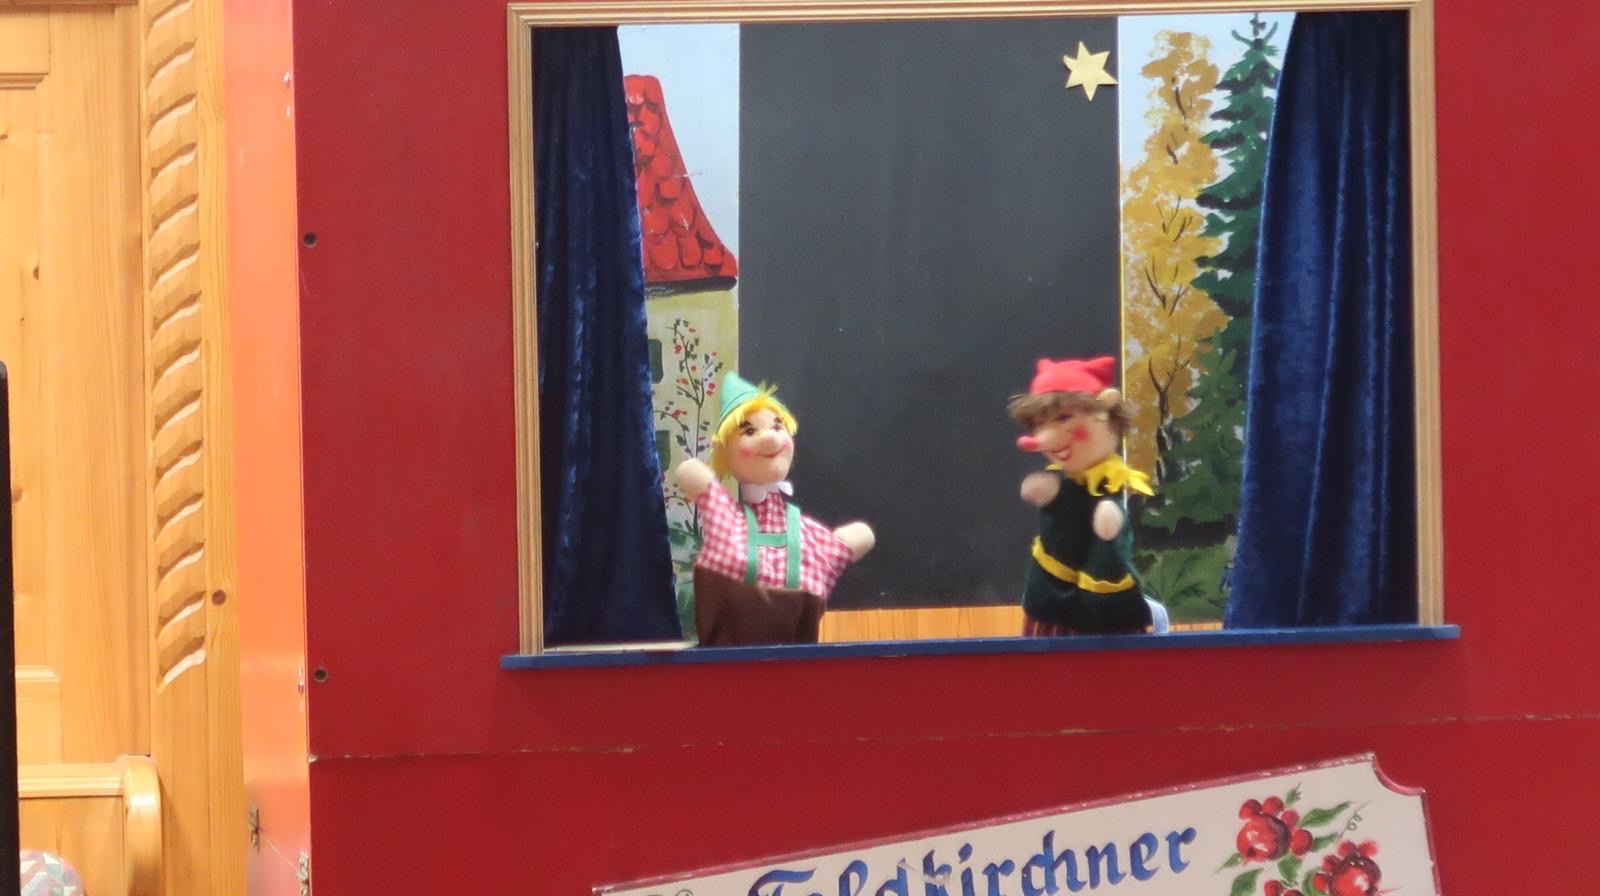 Kinderfasching2020 2